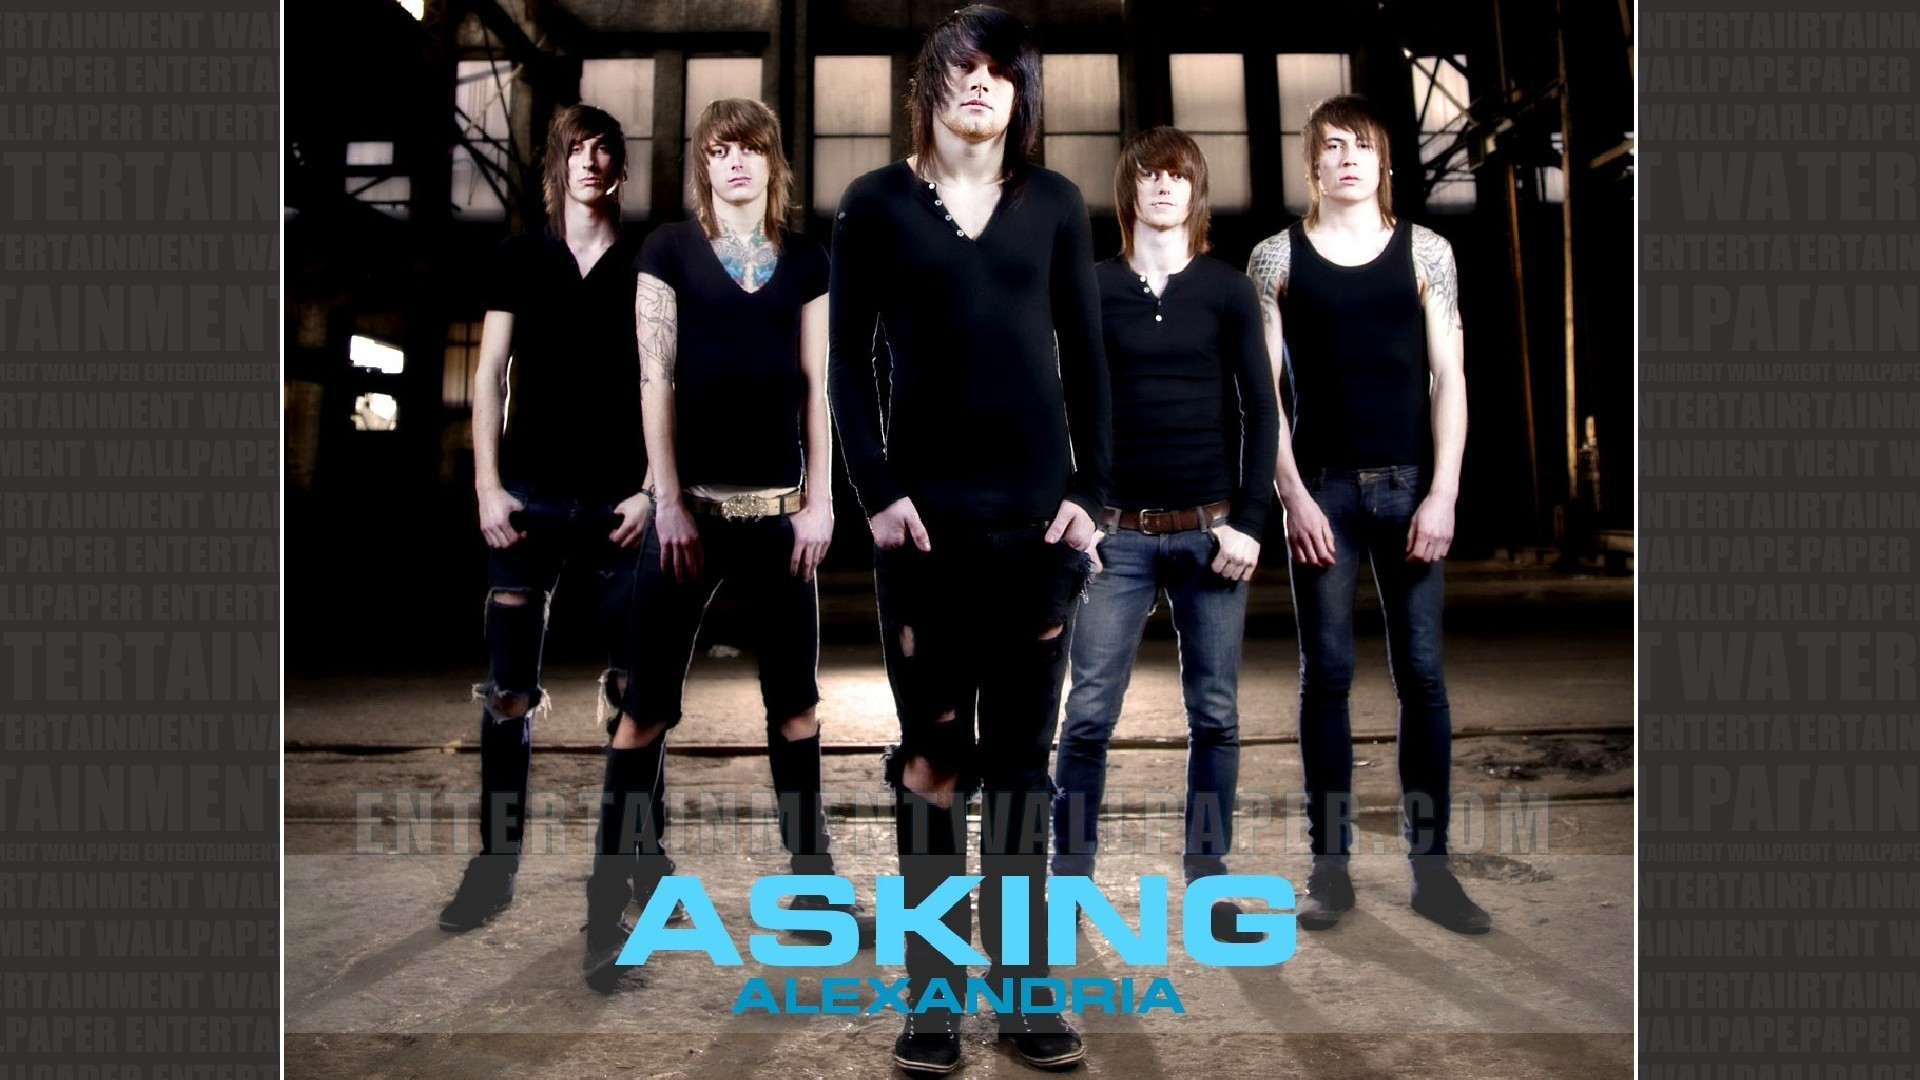 1920x1080  Asking Alexandria Wallpaper - #40032546 ( .